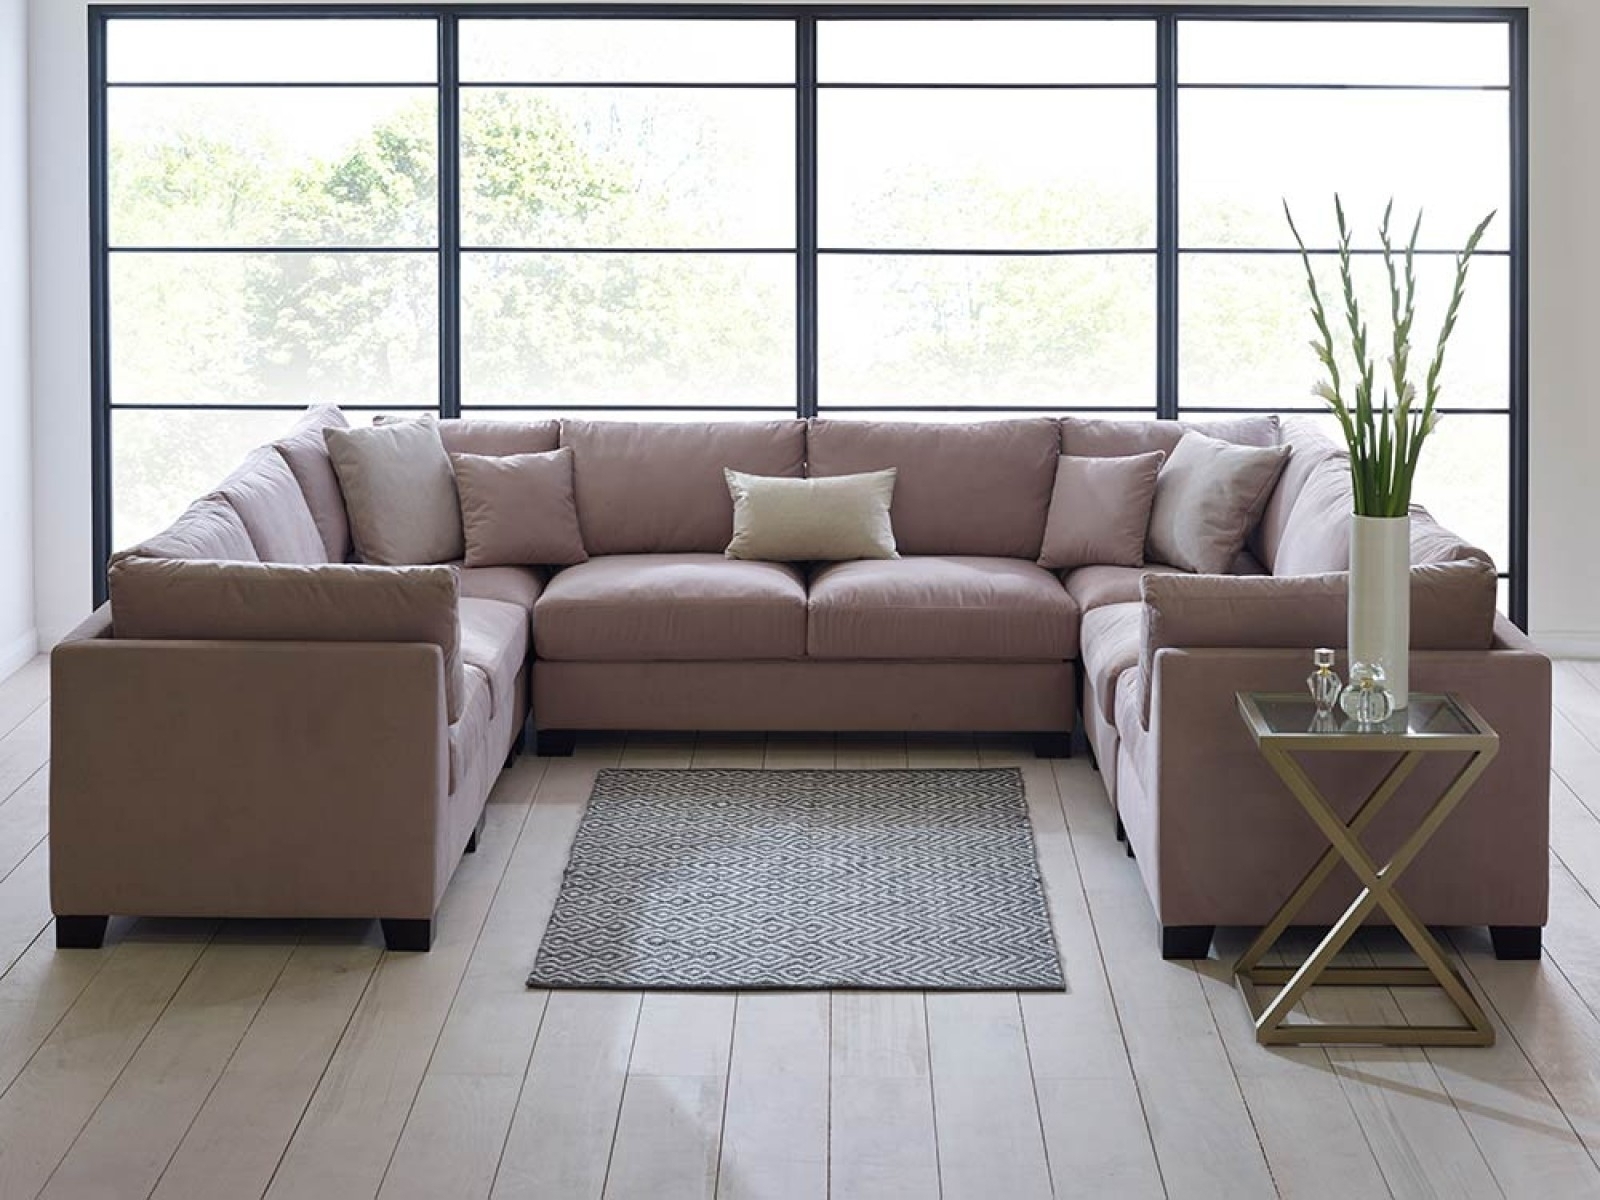 Widely Used U Shaped Sofa – Google Search (View 4 of 20)